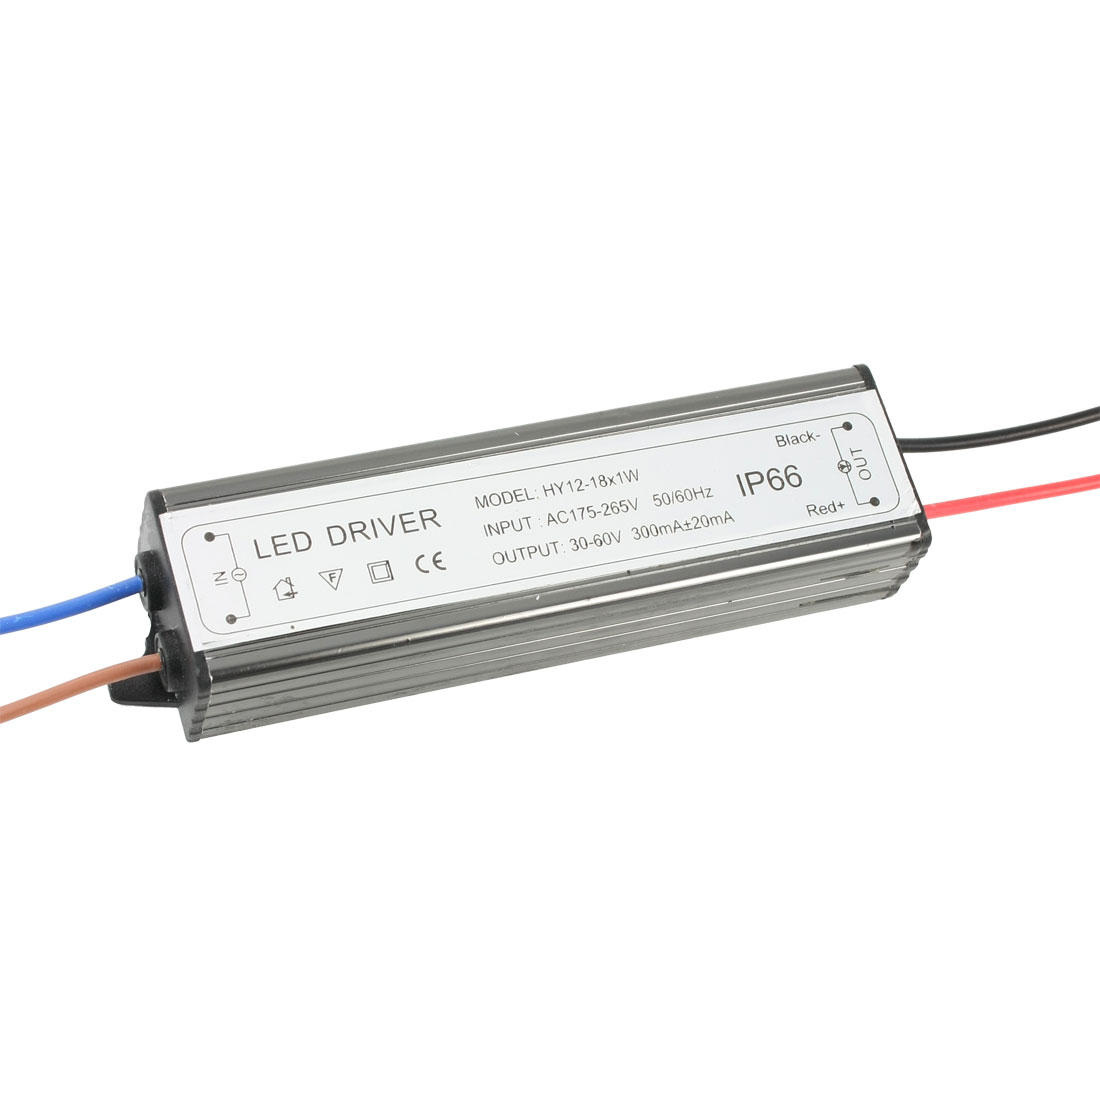 AC175-265V 50/60Hz Input 30-60V 300mA Output Polar 12-18*1W LED Power Driver